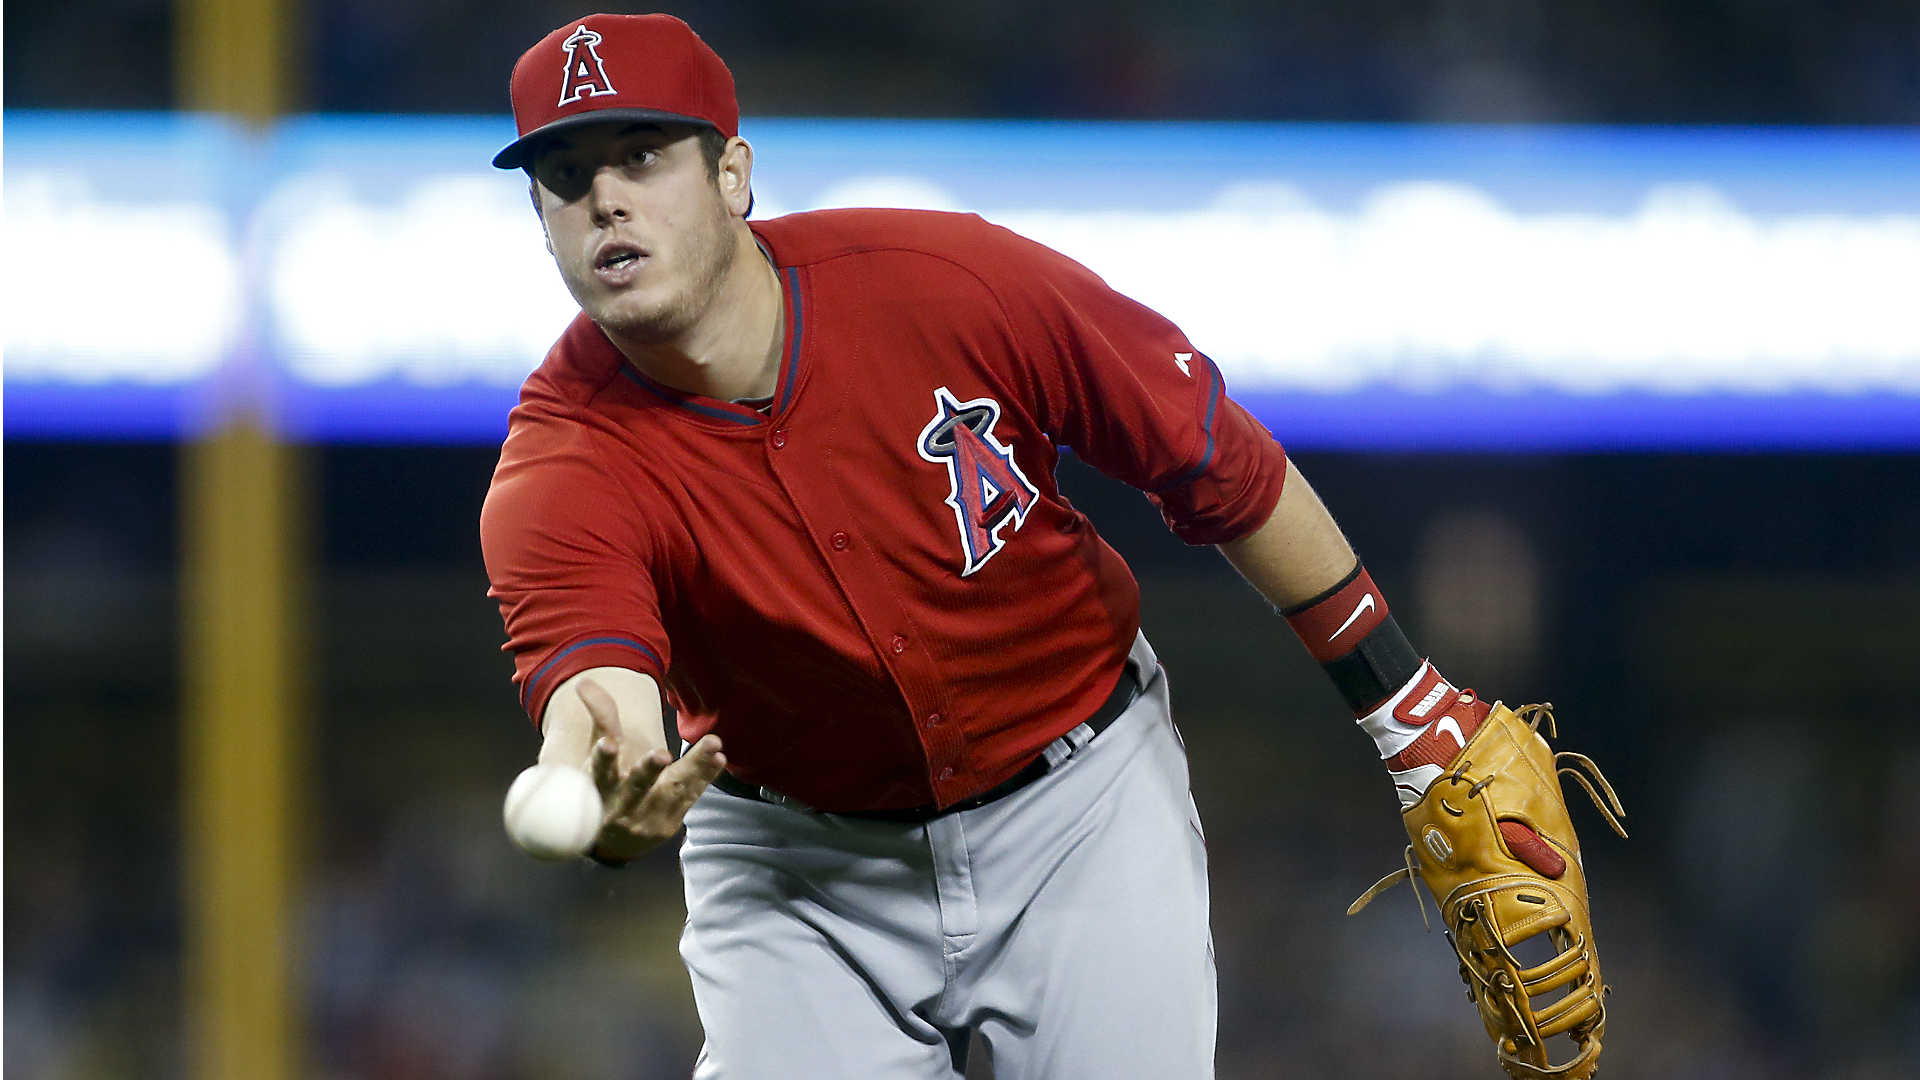 Get to Know: New Angels masher C.J. Cron